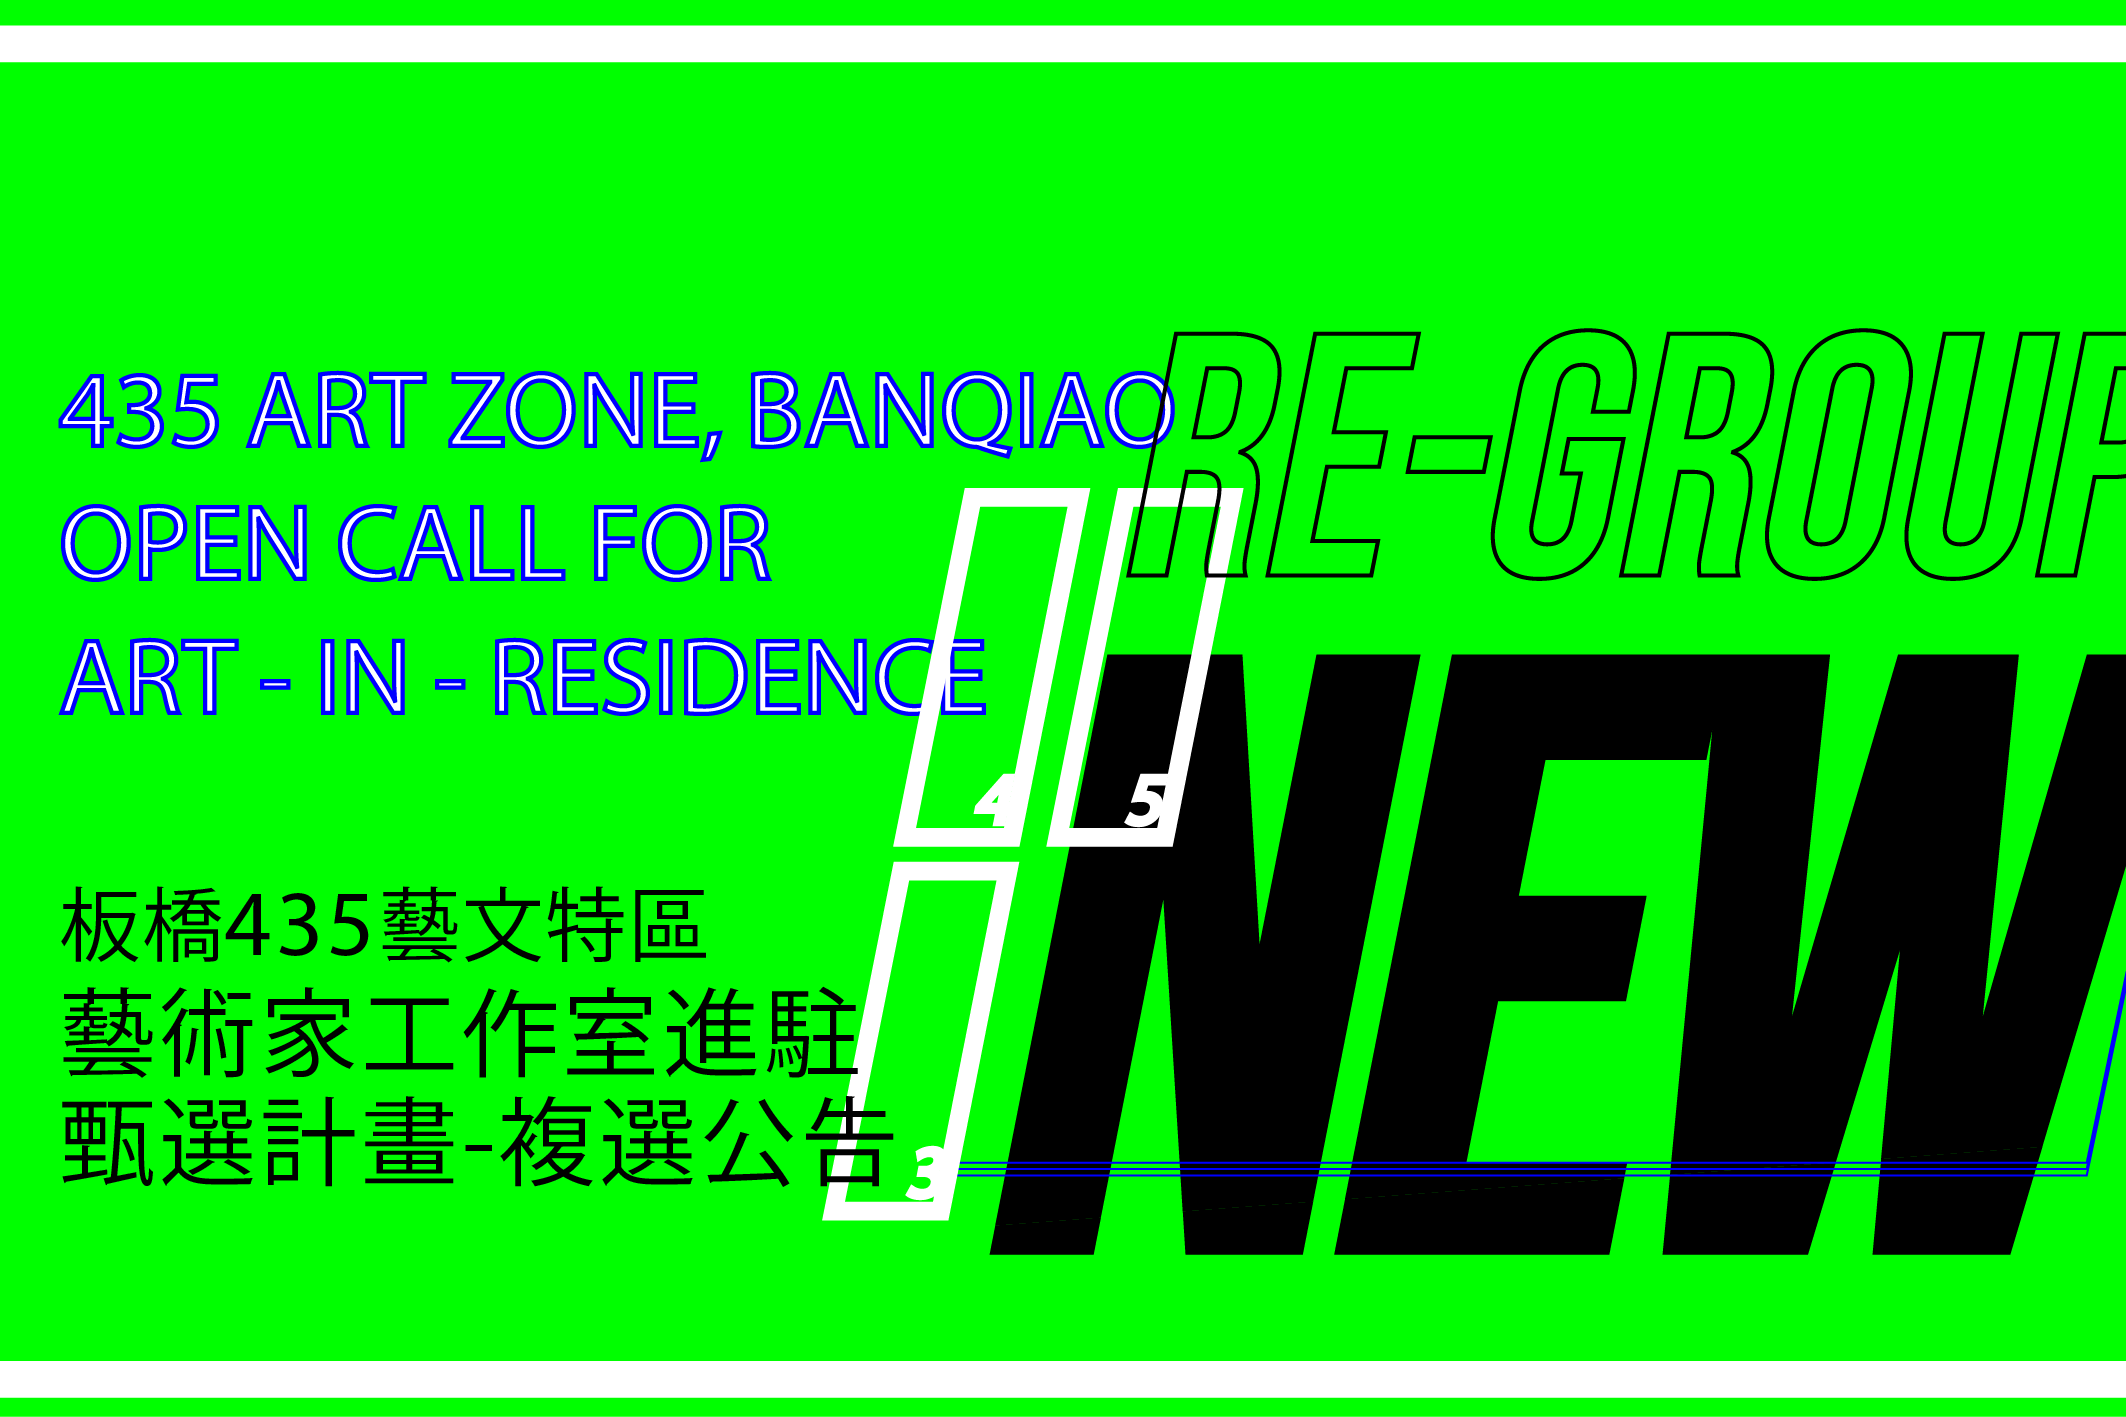 Notification of Second Review Meeting-2020 Open call for Art - in - Residence, Banqiao 435 Art Zone